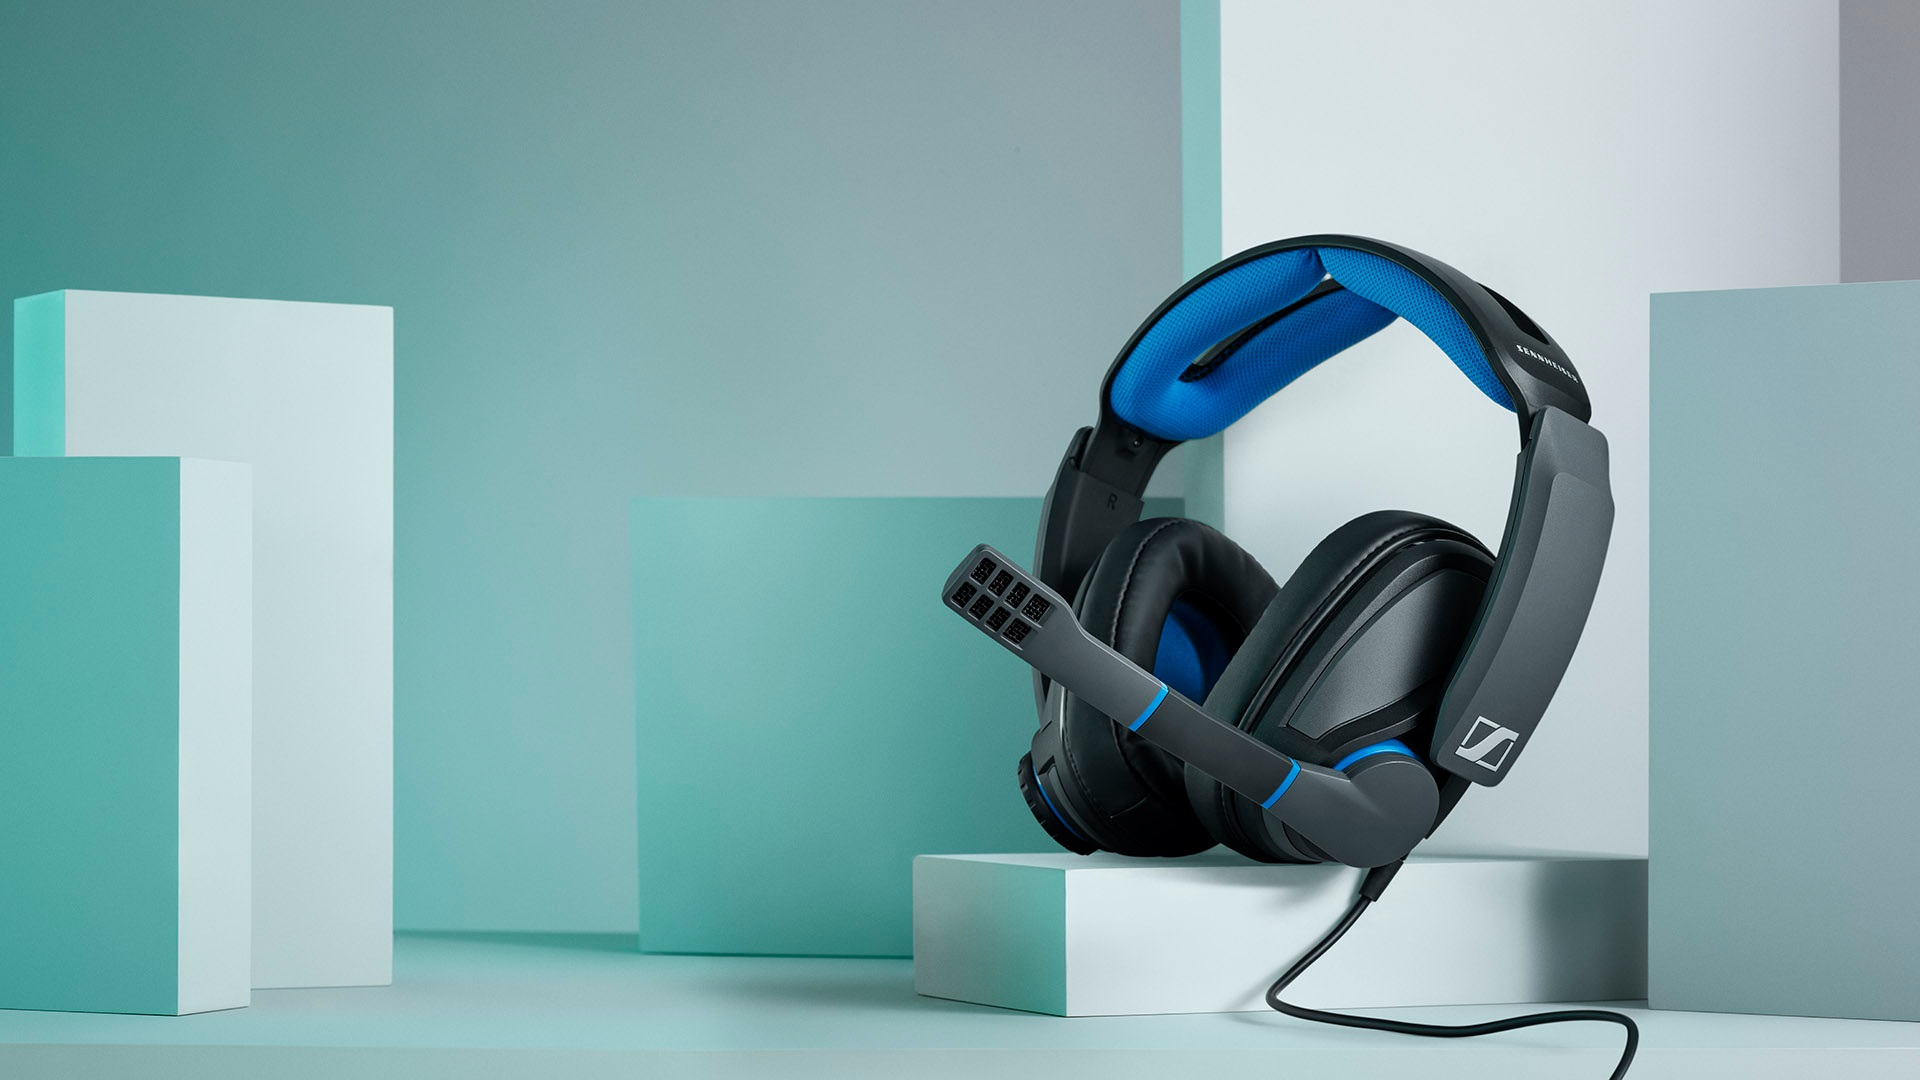 By purchasing a qualifying headset such as the Sennheiser GSP 300 seen above before December 31, you'll gain exclusive access to the EPOS Masterclasses livestreams in January 2021.